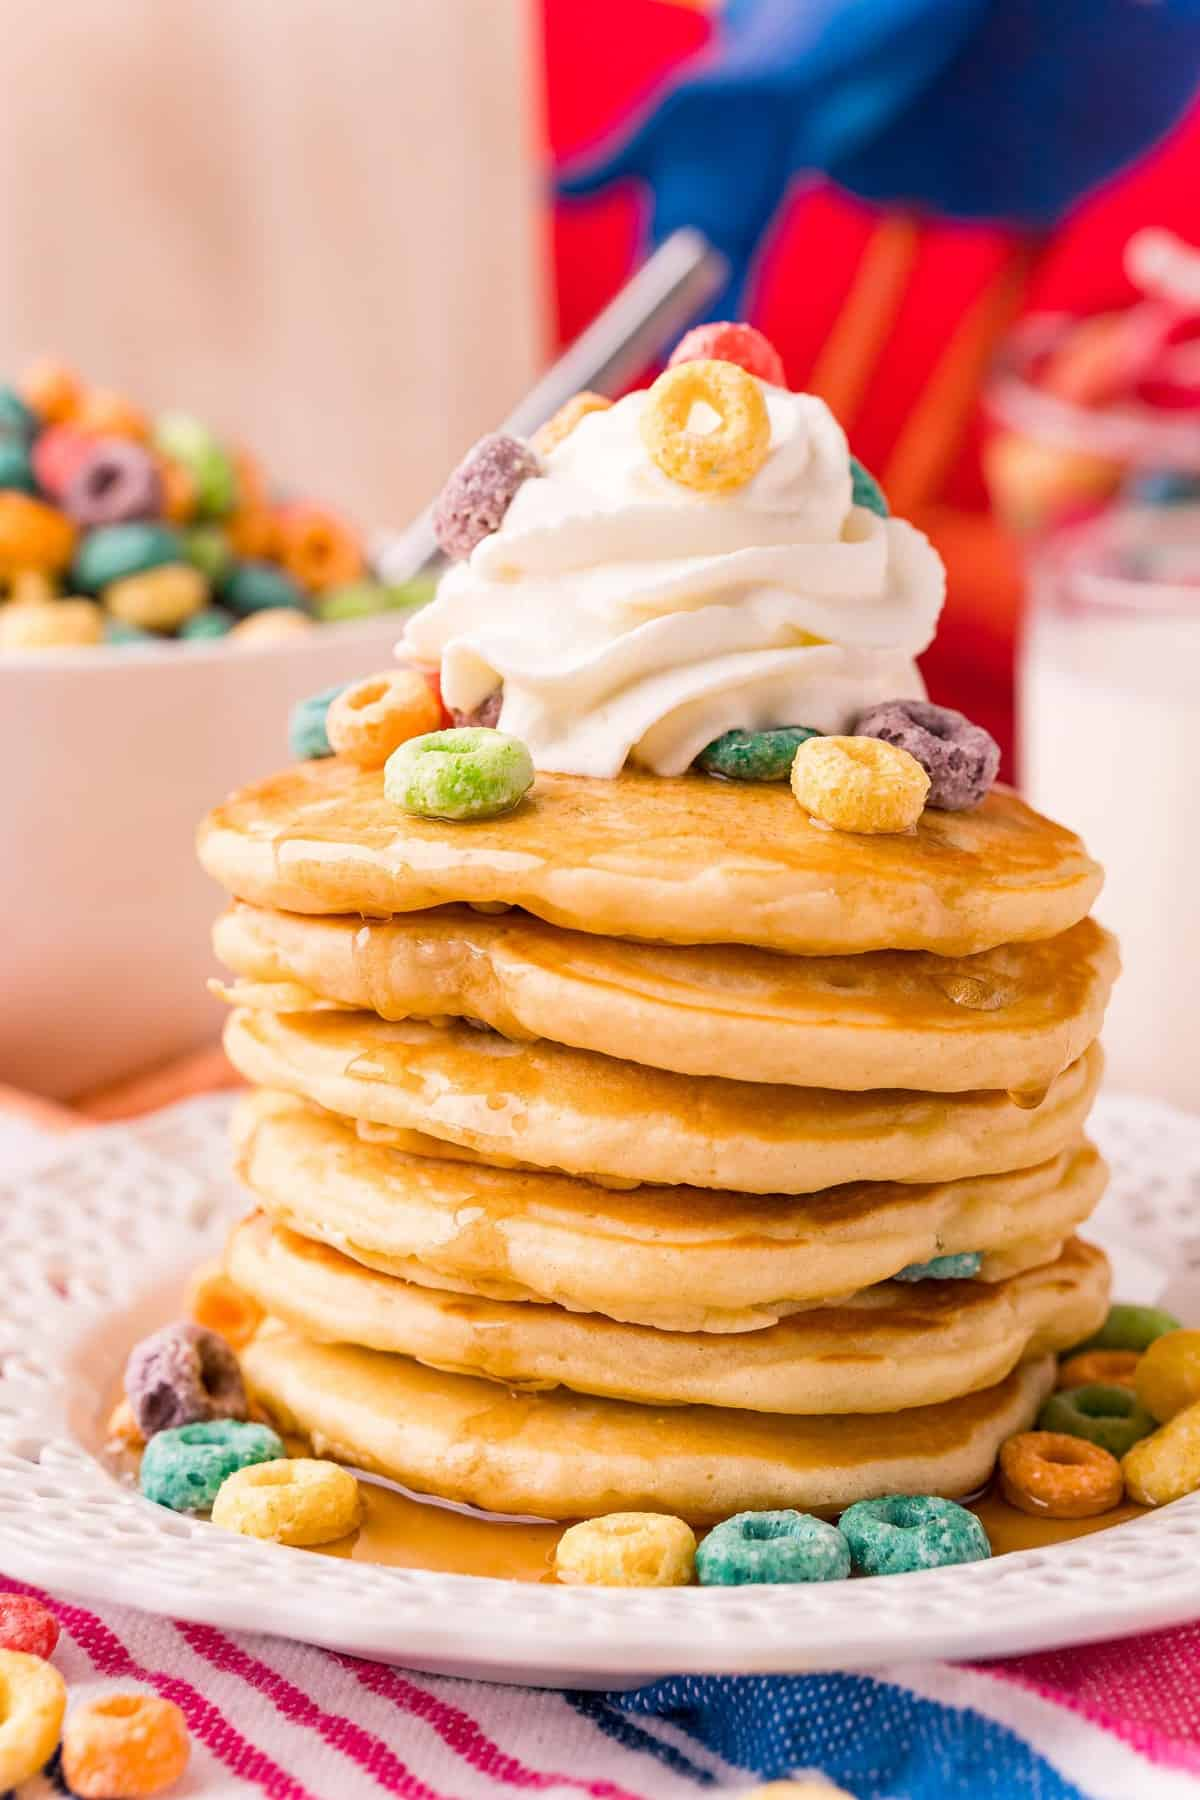 Pancakes topped with Froot Loops cereal, whipped cream, and syrup.